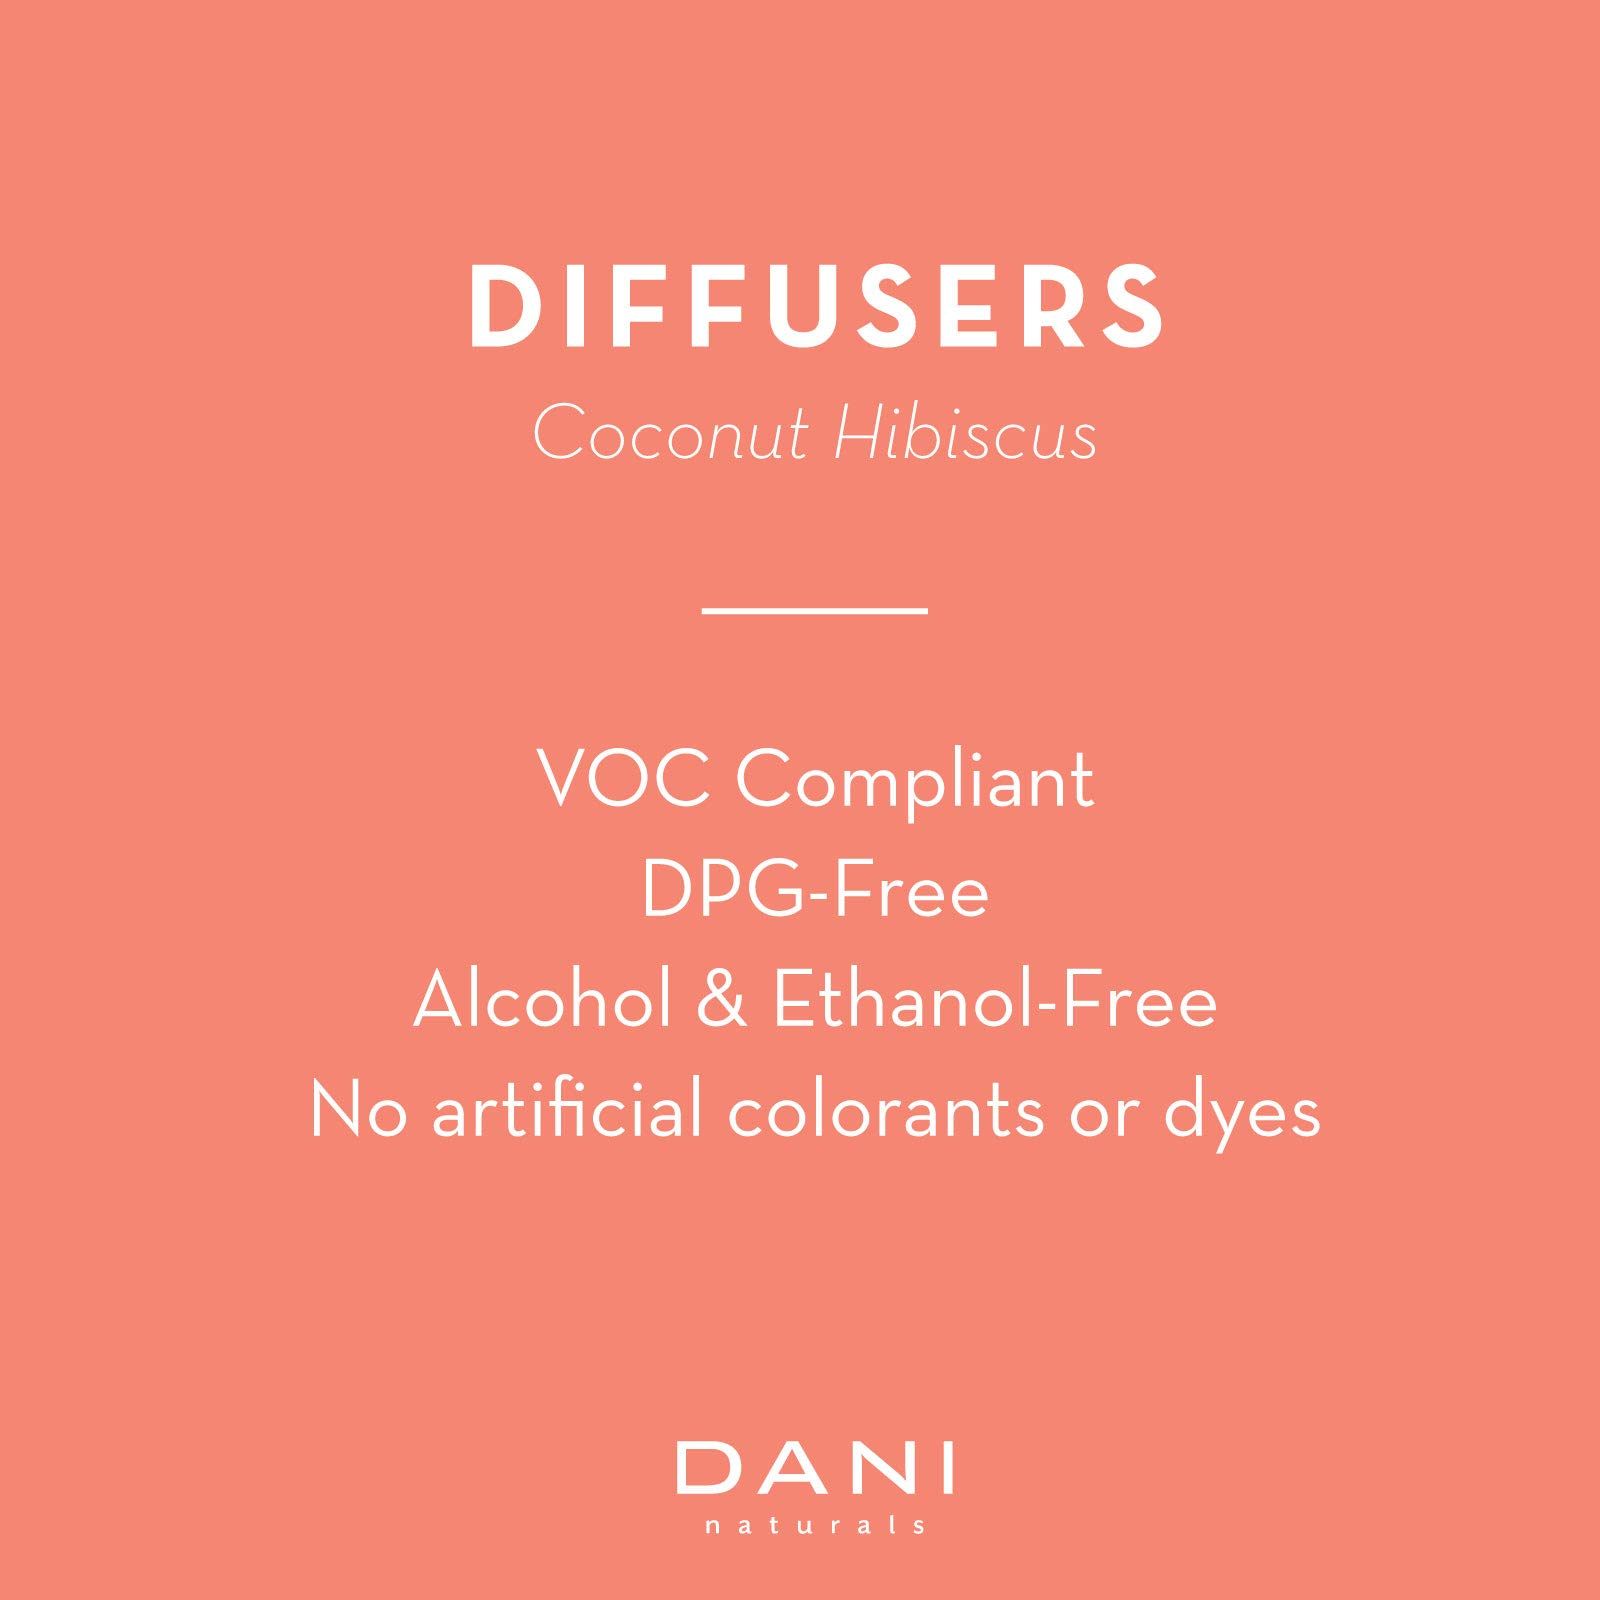 Natural Reed Diffuser Set by DANI Naturals - Tropical Coconut Hibiscus Scent - Aromatherapy Essential Oils - Alcohol Free - 10 Diffuser Sticks - 3.5 Ounce Glass Bottle by DANI (Image #3)